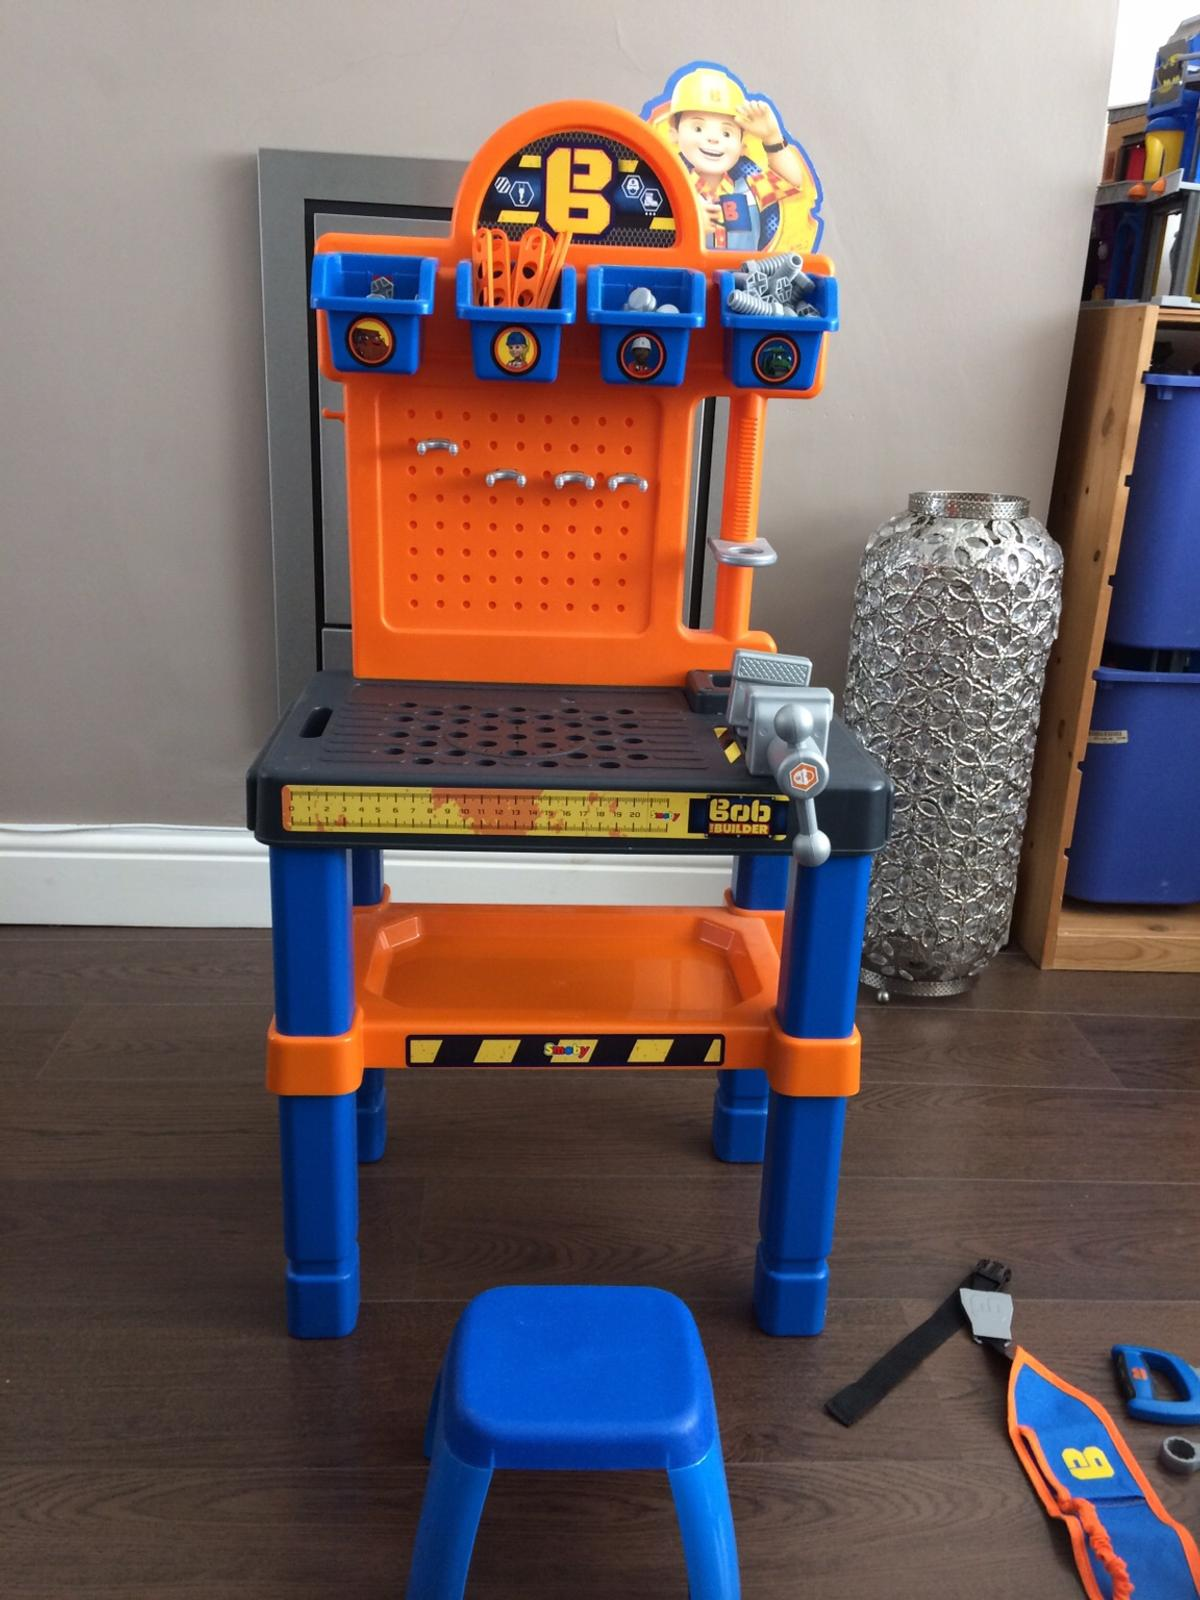 Incredible Bob The Builder Work Bench Tools Stool In L12 Liverpool For Gmtry Best Dining Table And Chair Ideas Images Gmtryco